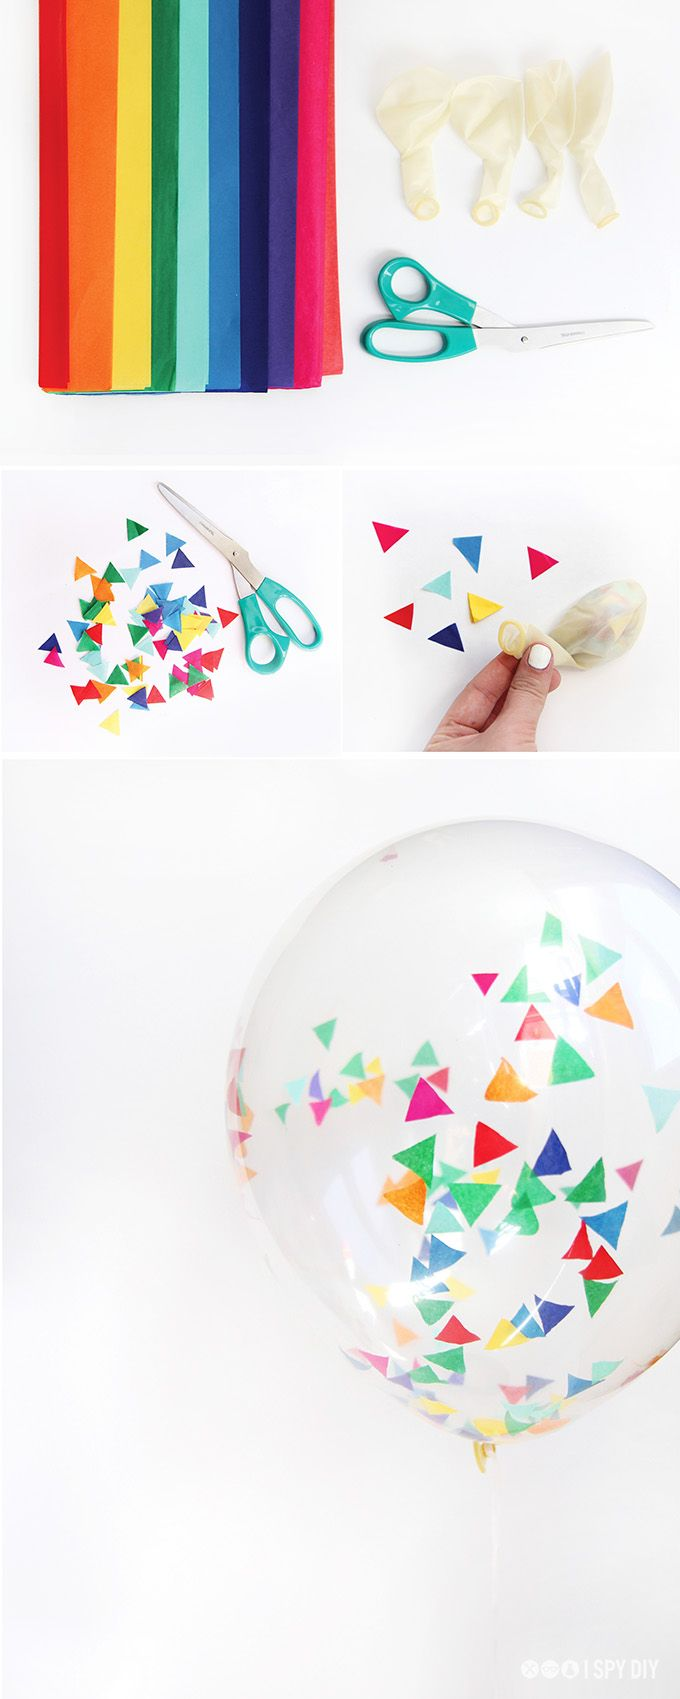 She Wraps Clear Plastic Around A Balloon. The End Result Is A Major Upgrade To Any Party http://www.wimp.com/unique-unusual-party-balloon-decorations-hacks/